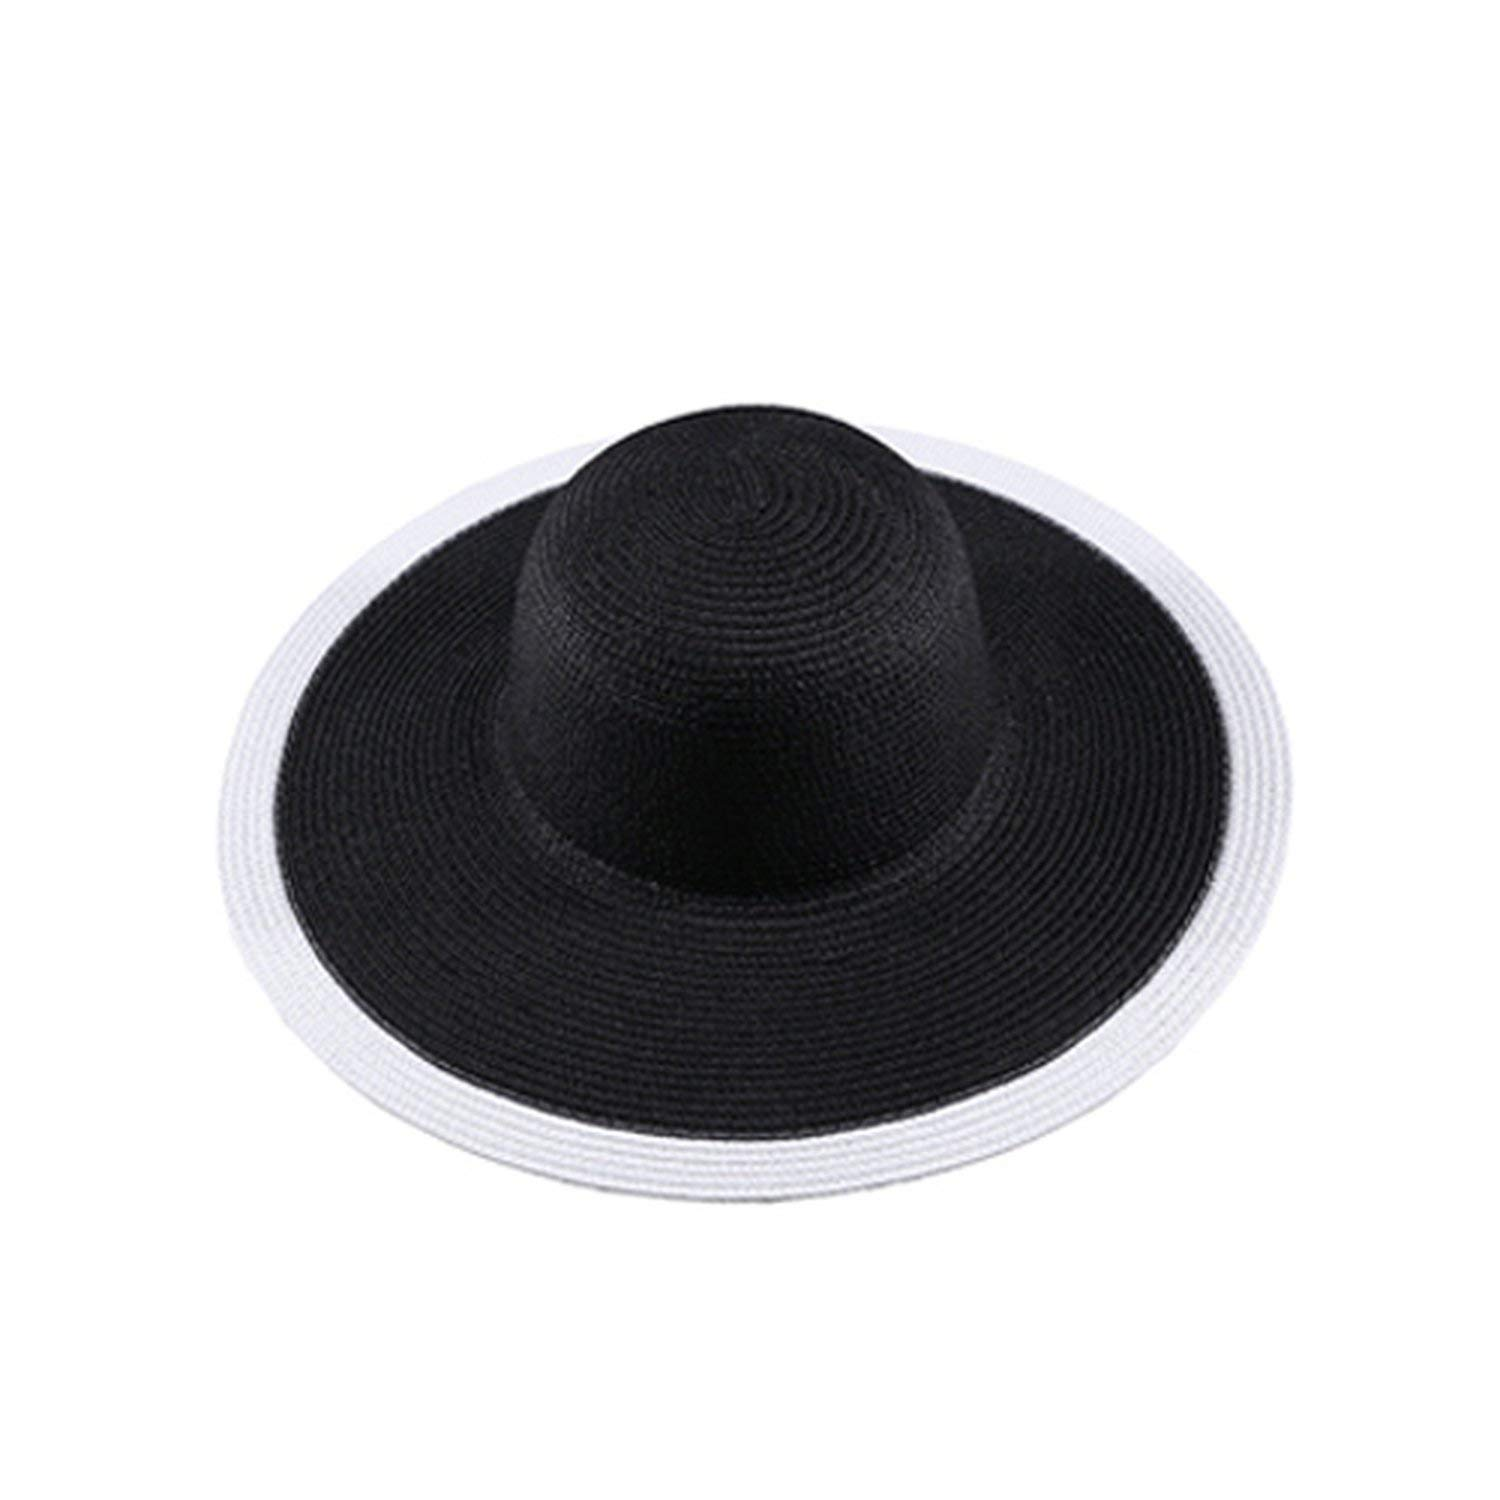 Collocation-Online Summer Women Foldable Sunhat Wide Large Brim Beach Cap Ladies Elegant Tour Hat